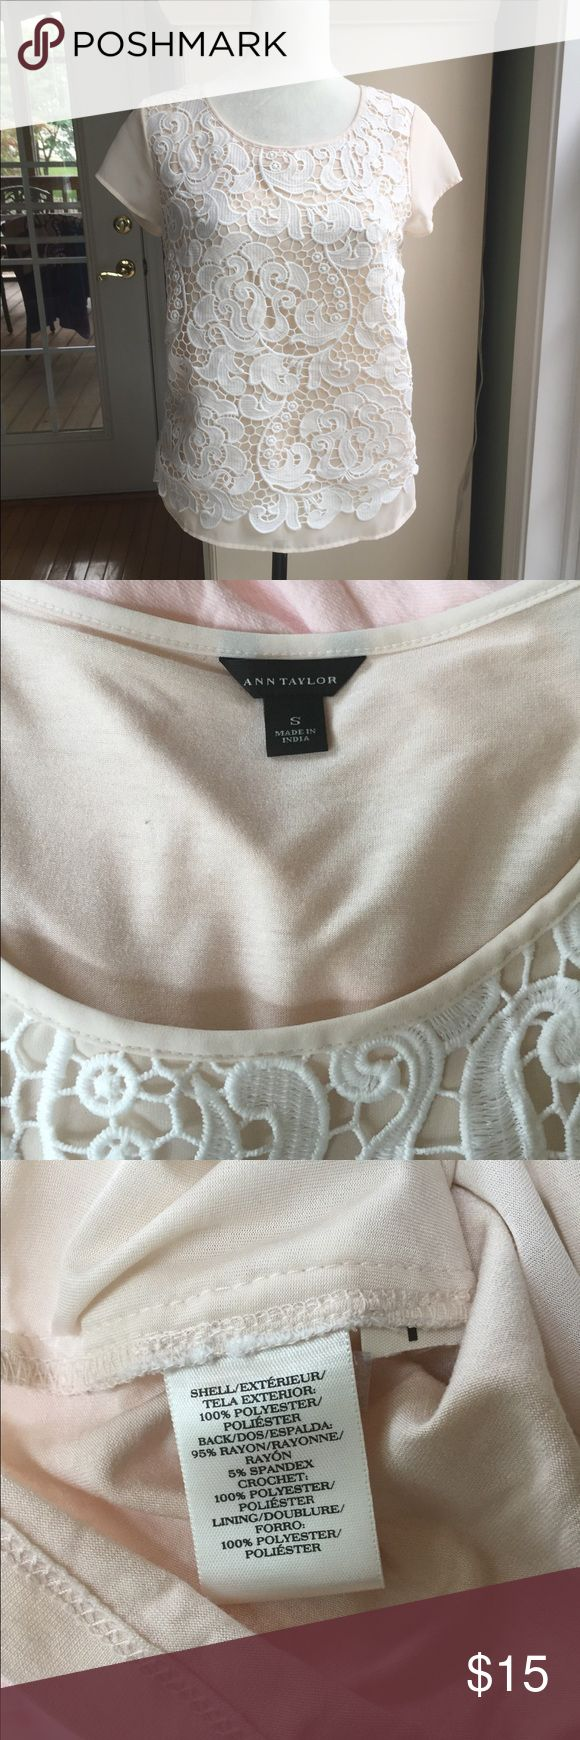 Ann Taylor lace cream top Ann Taylor cream/nude tee with lace overlay.  Size small. Rayon/polyester blend. Ann Taylor Tops